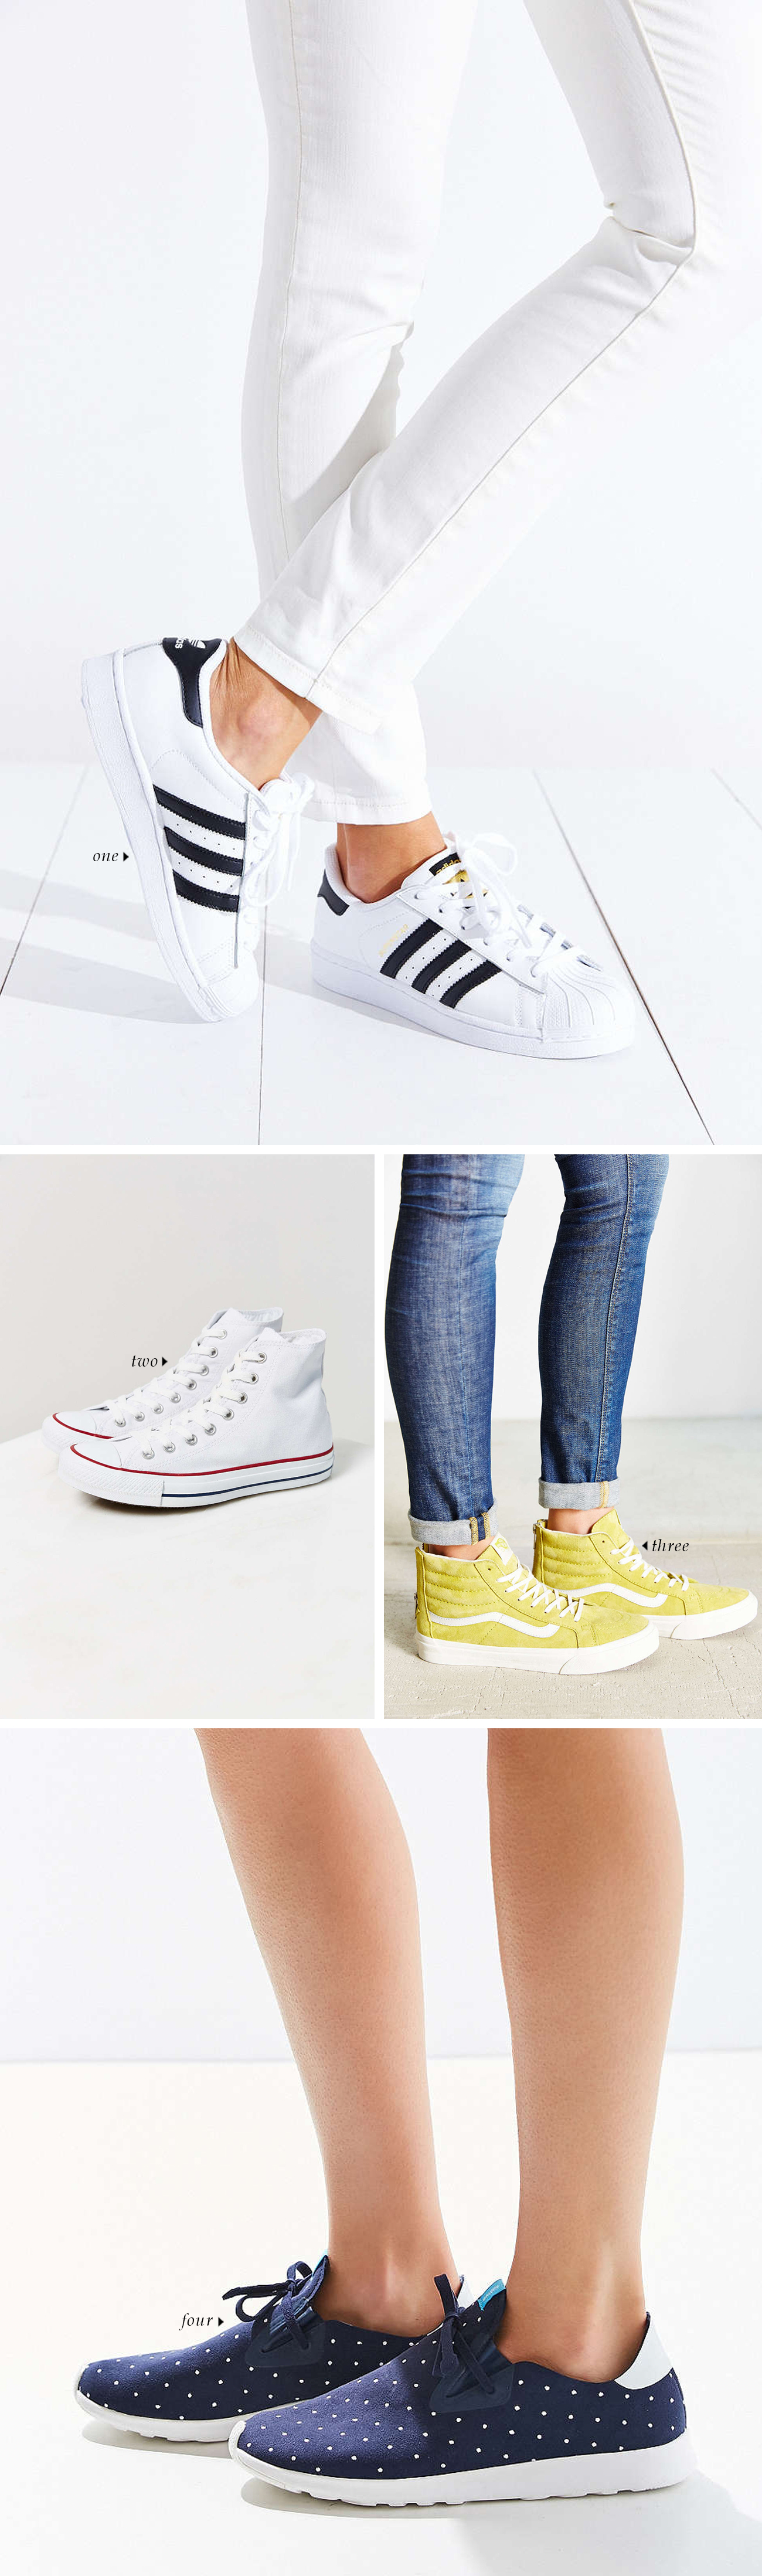 spring summer 2016 shoe trends | Sneakers